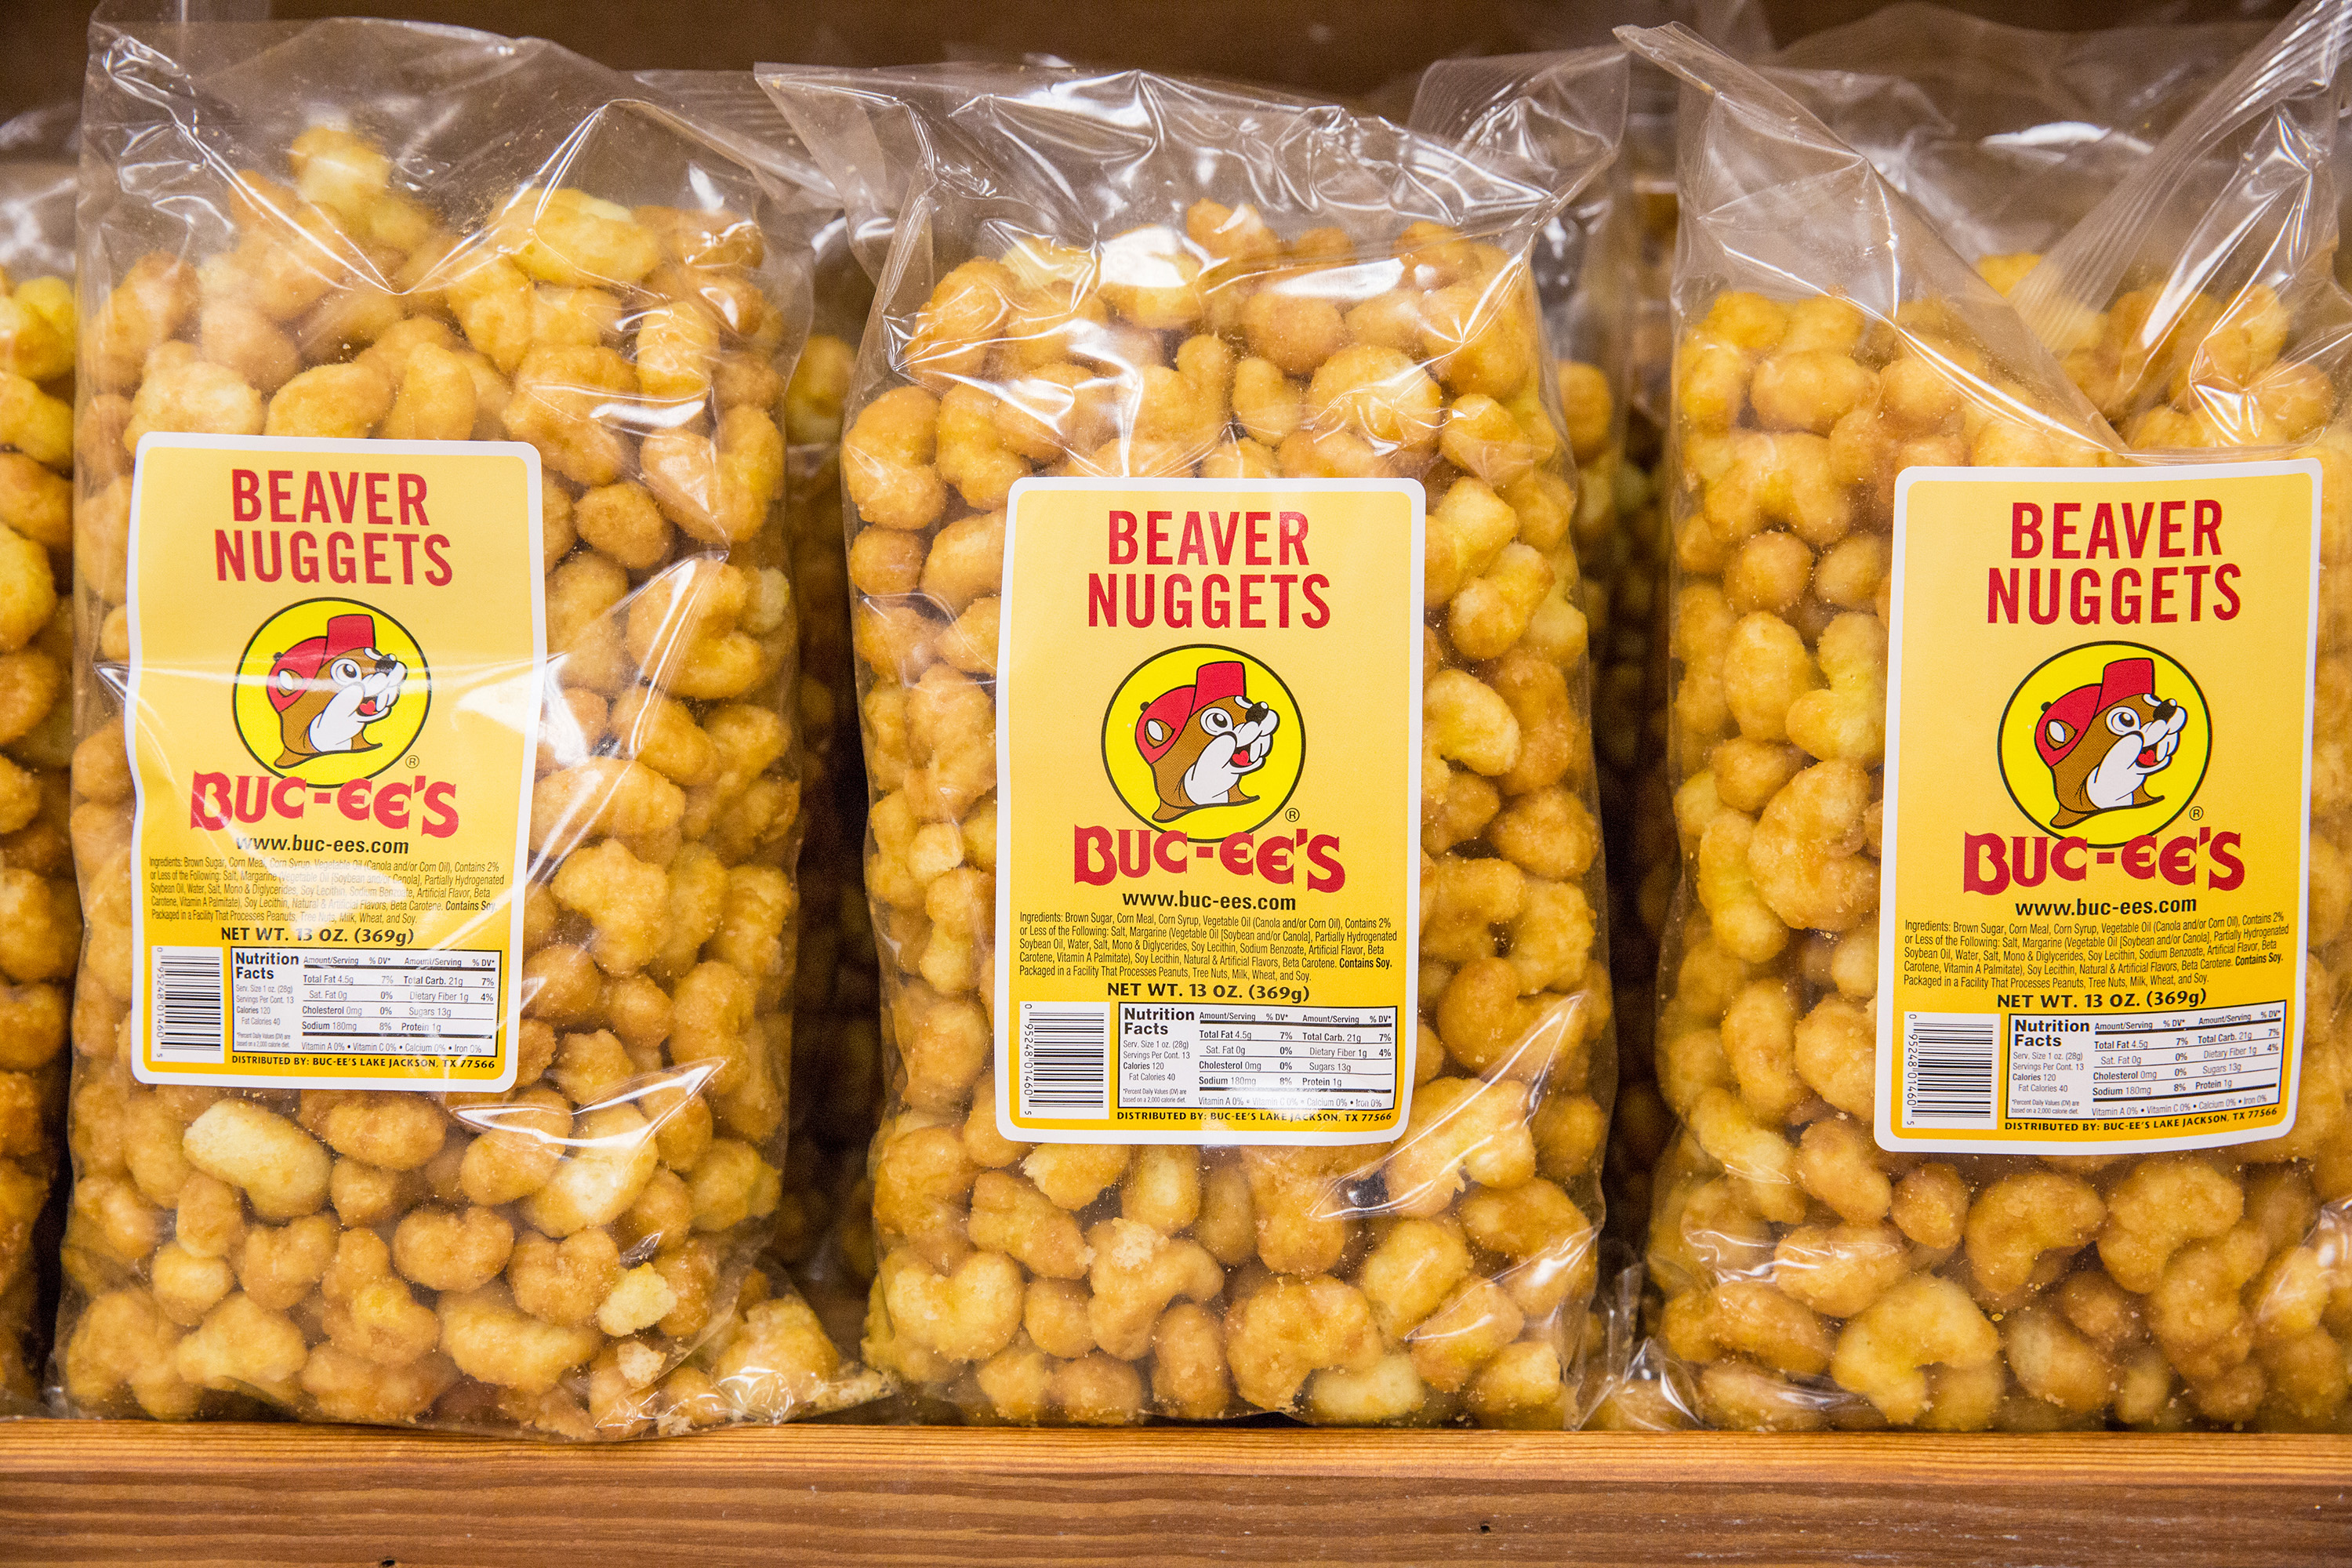 Beaver Nuggets at Buc-ee's